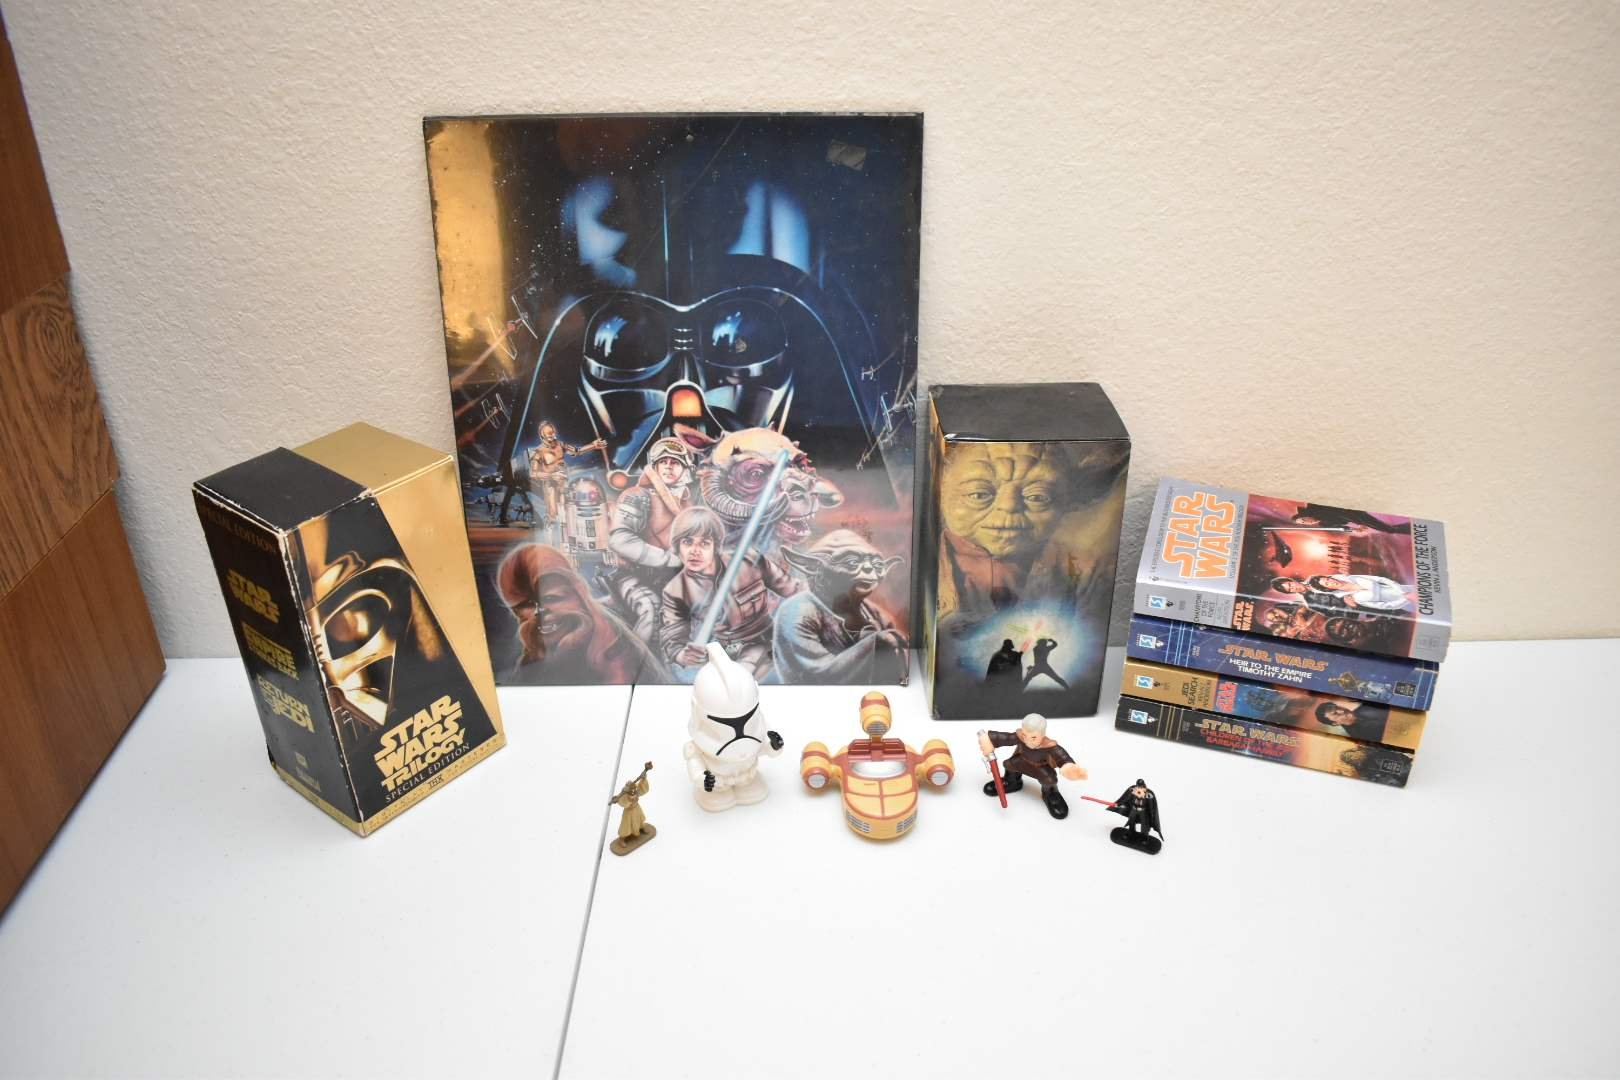 Vintage Misc STAR WARS Stuff: (2) Special Ed. Box sets, Darth Goofy, Books, Vintage Picture